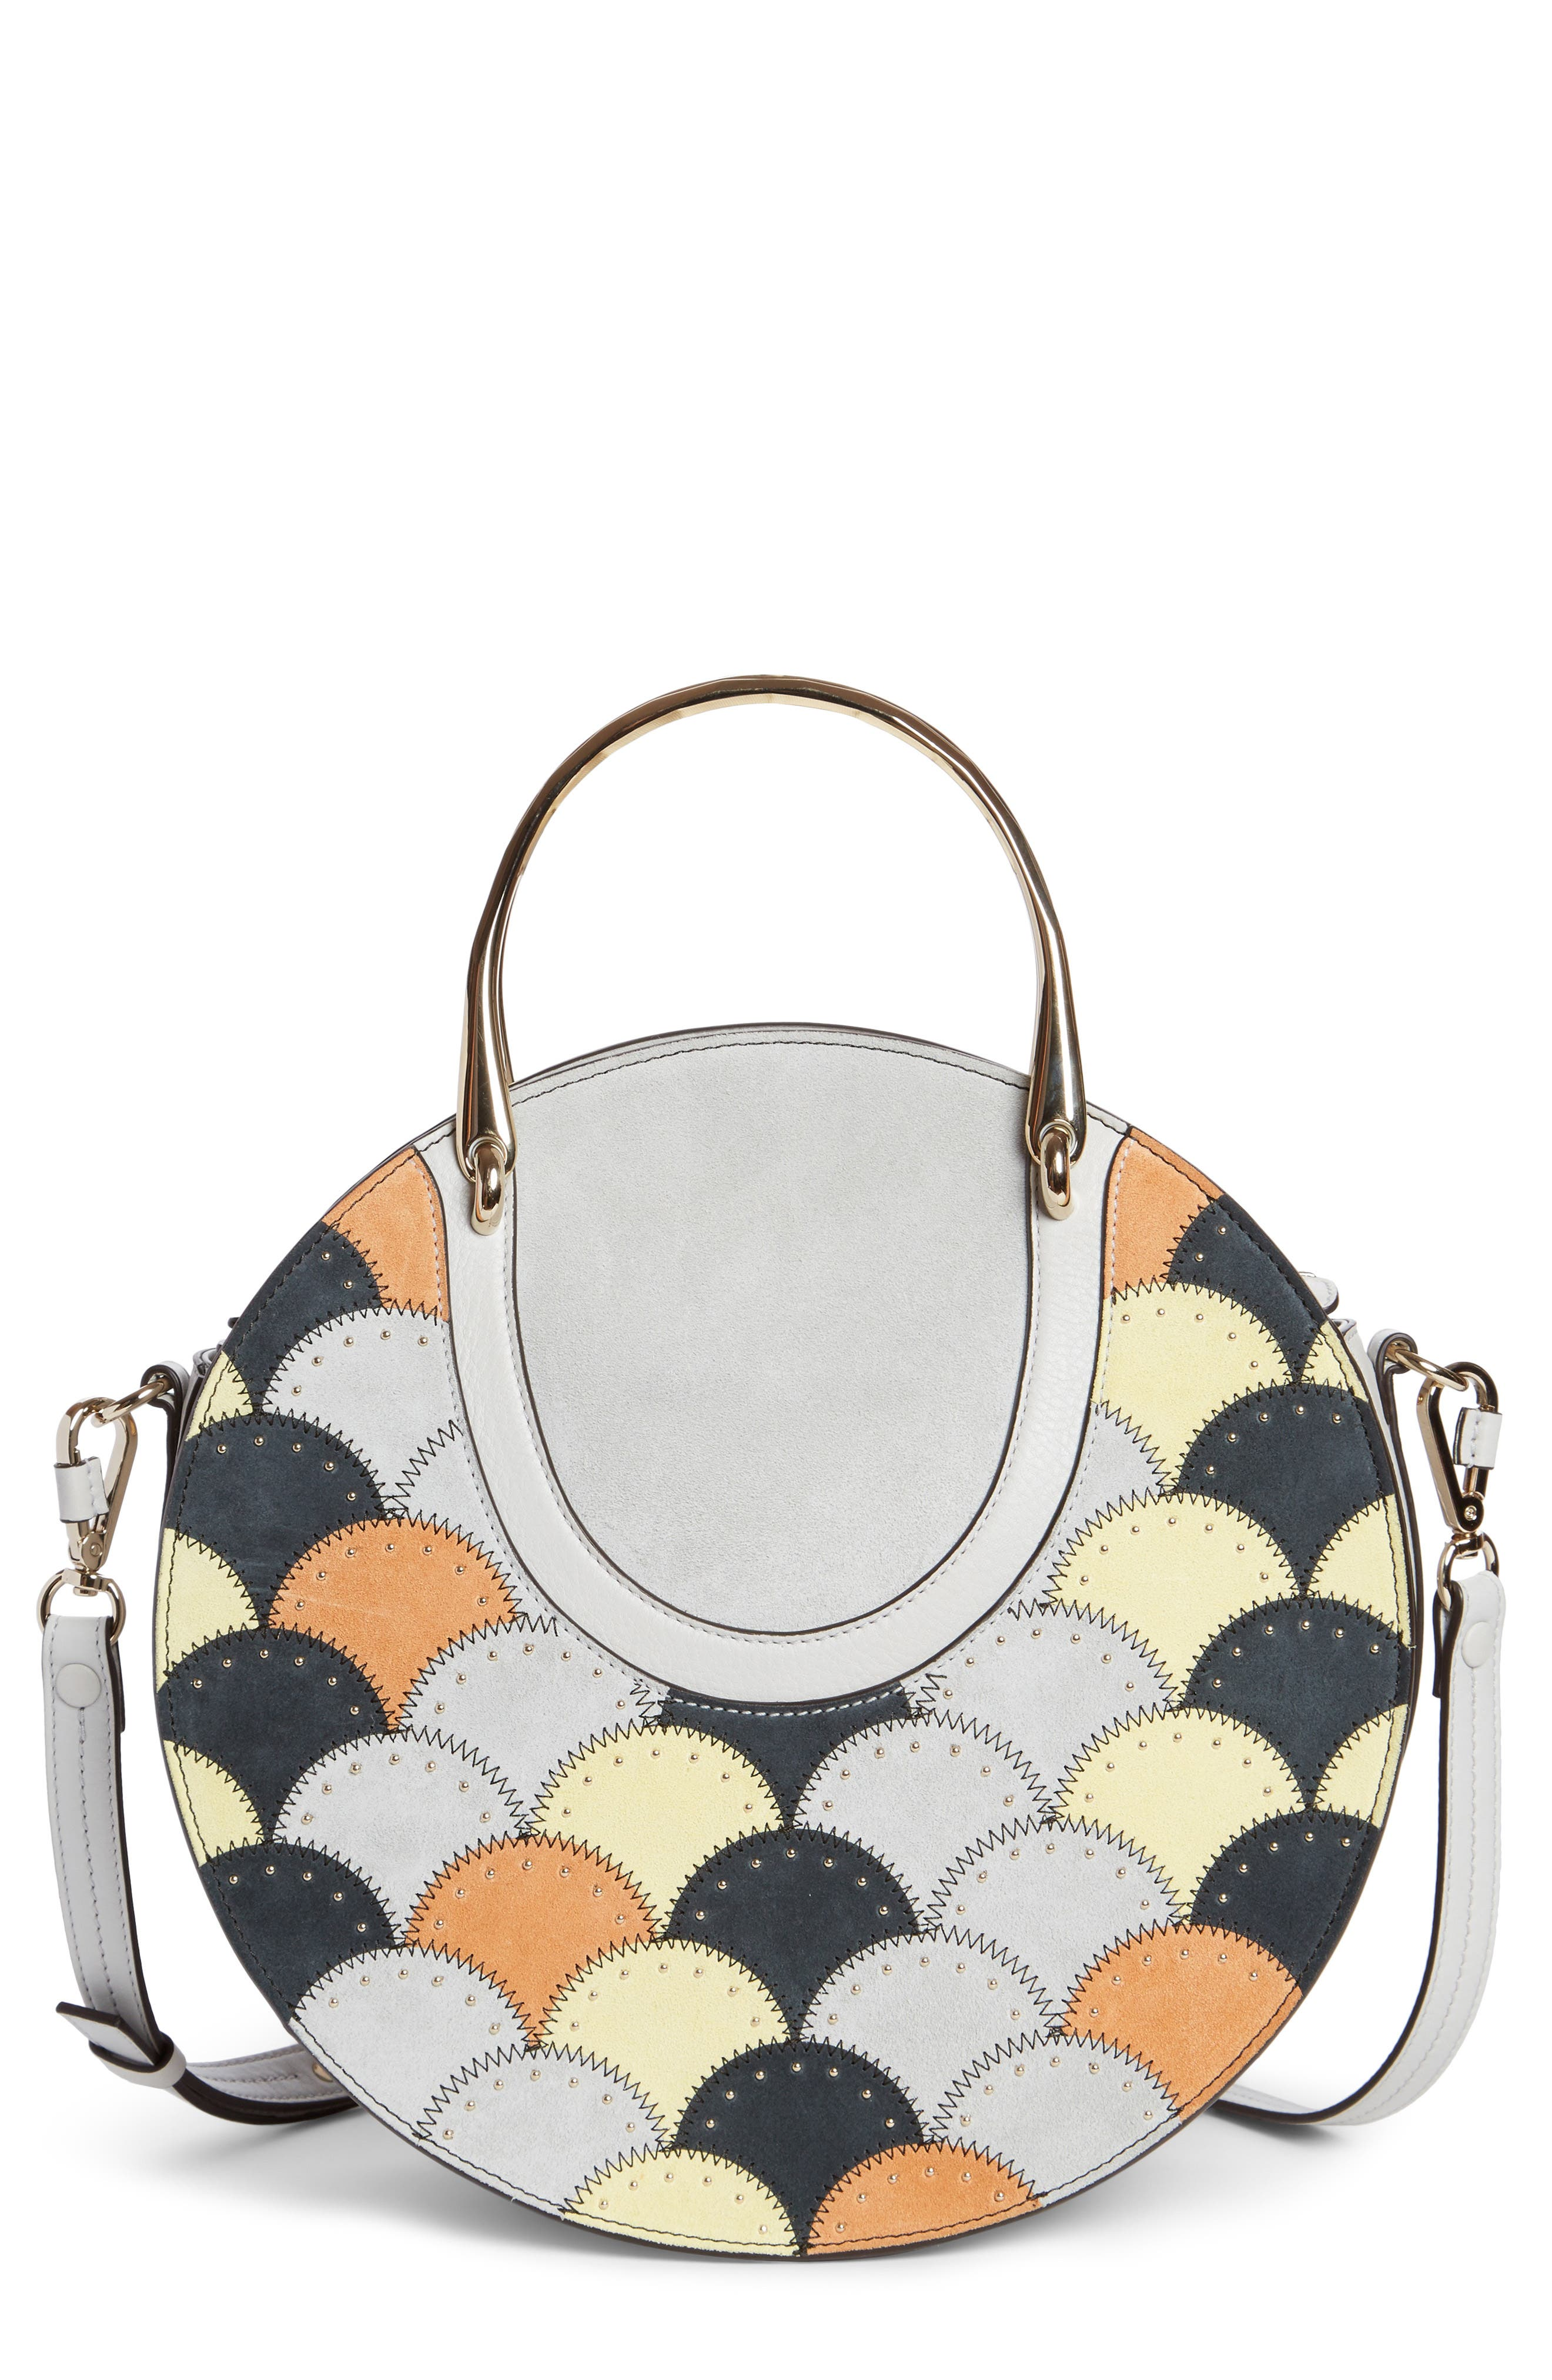 Chloé Maxi Pixie Studded Scales Calfskin Leather Top Handle Satchel